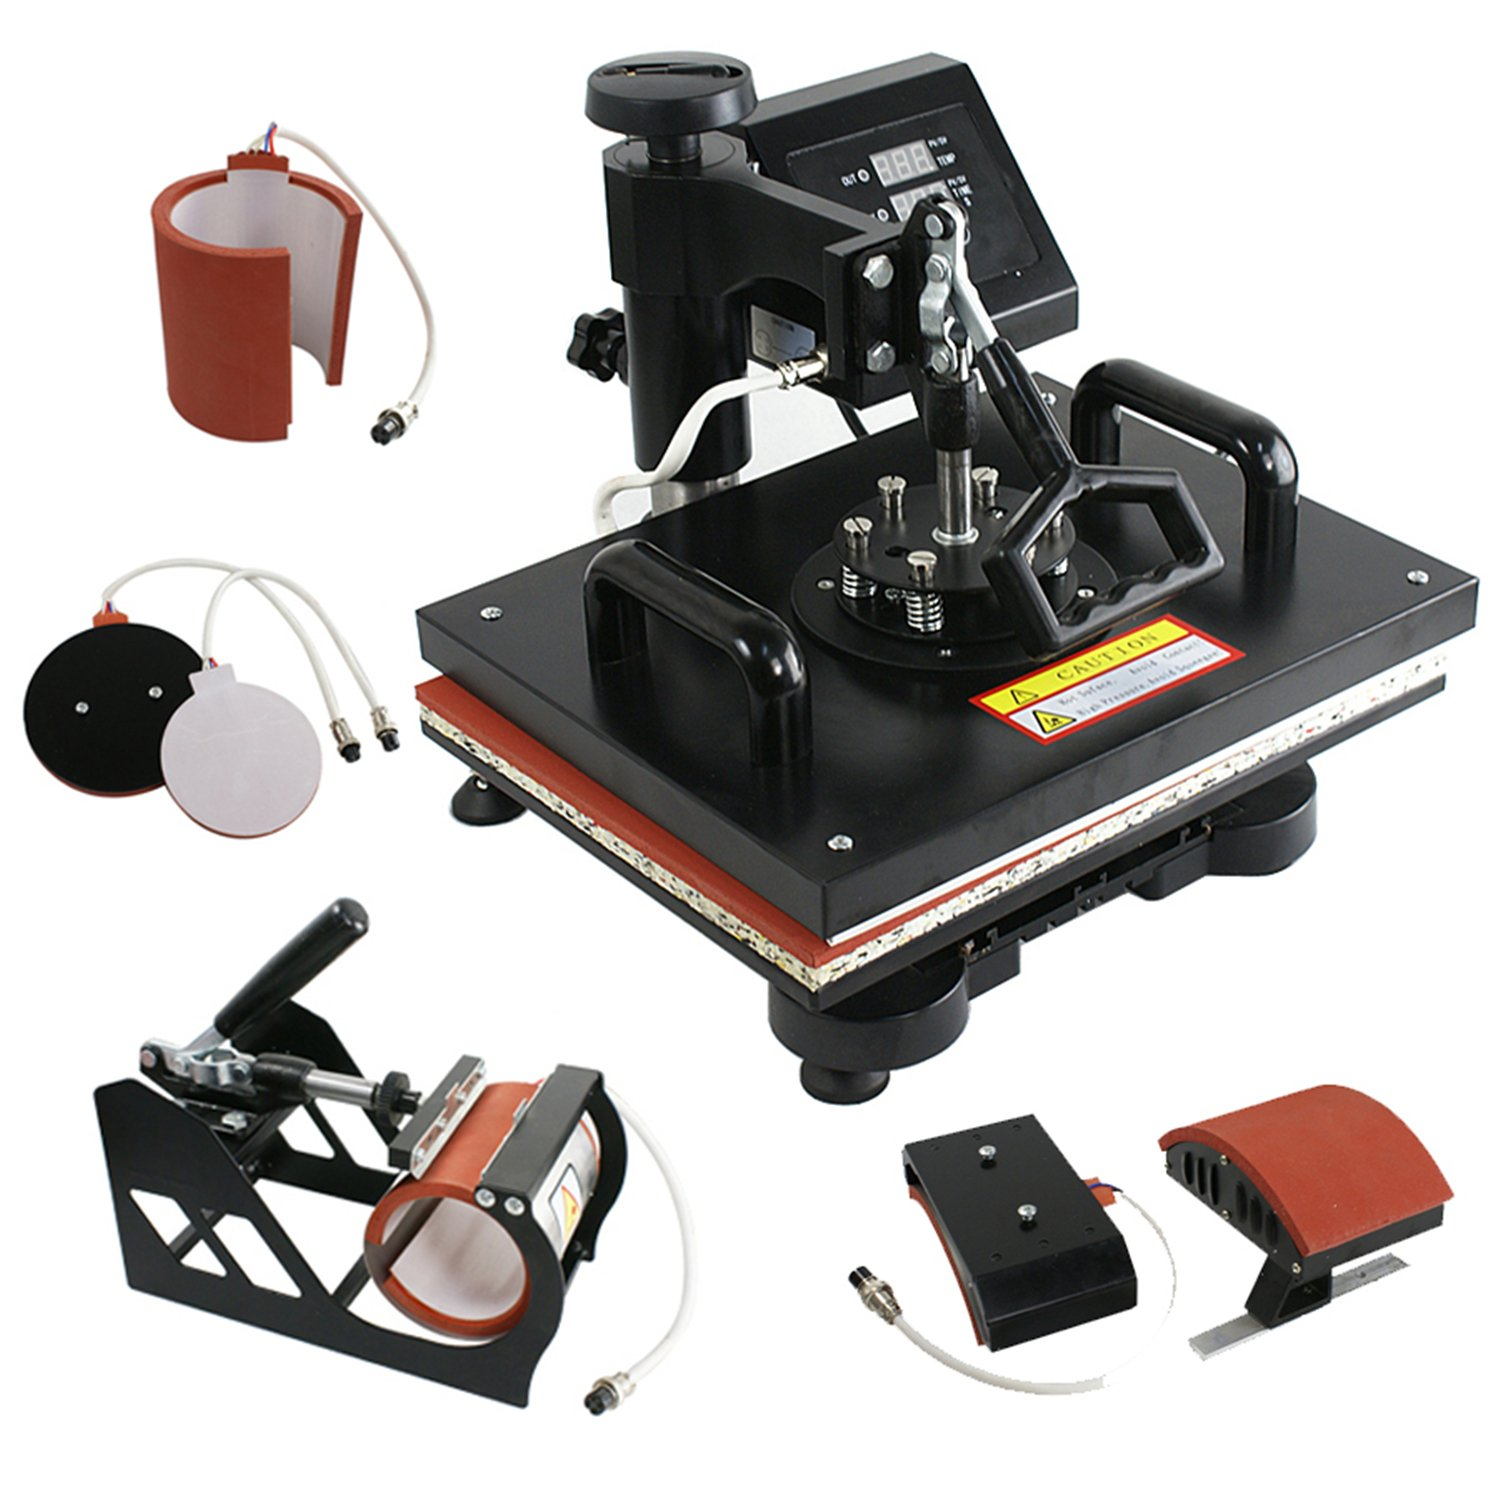 Best Heat Press Machine - Digital Multifunction Heat Press